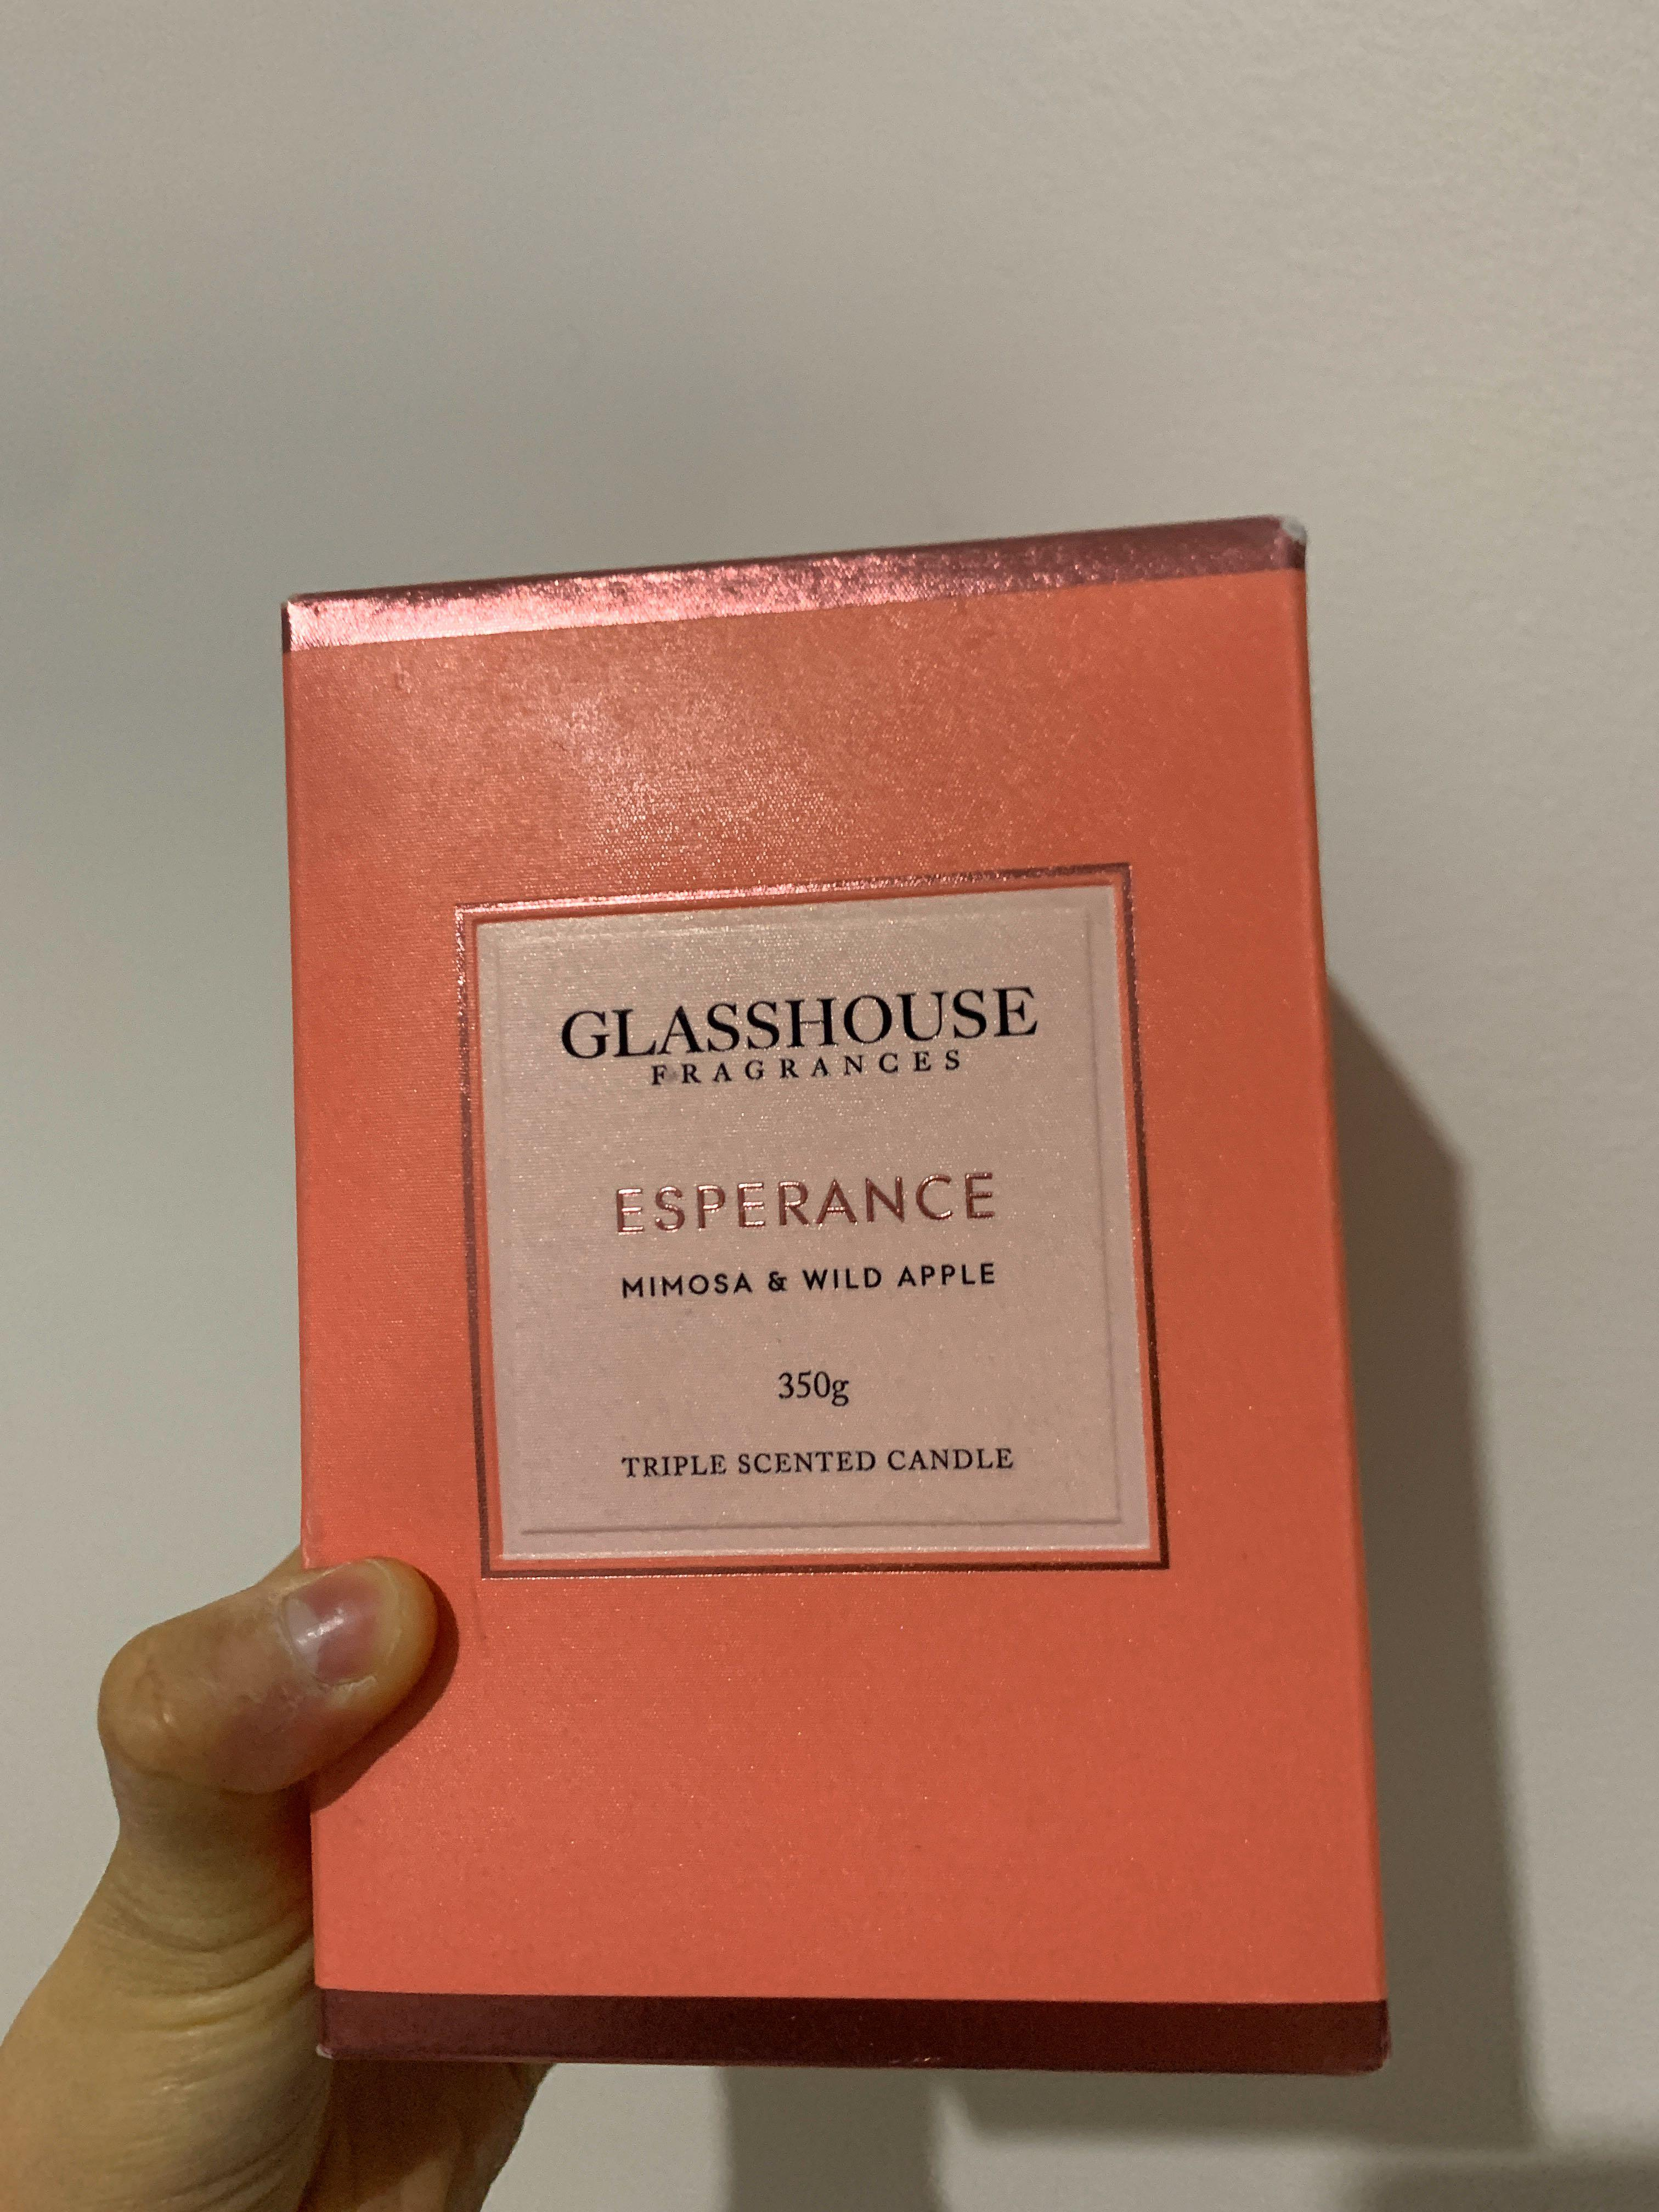 Glasshouse Fragrance Candle - Mimosa & Wild Apple 350g